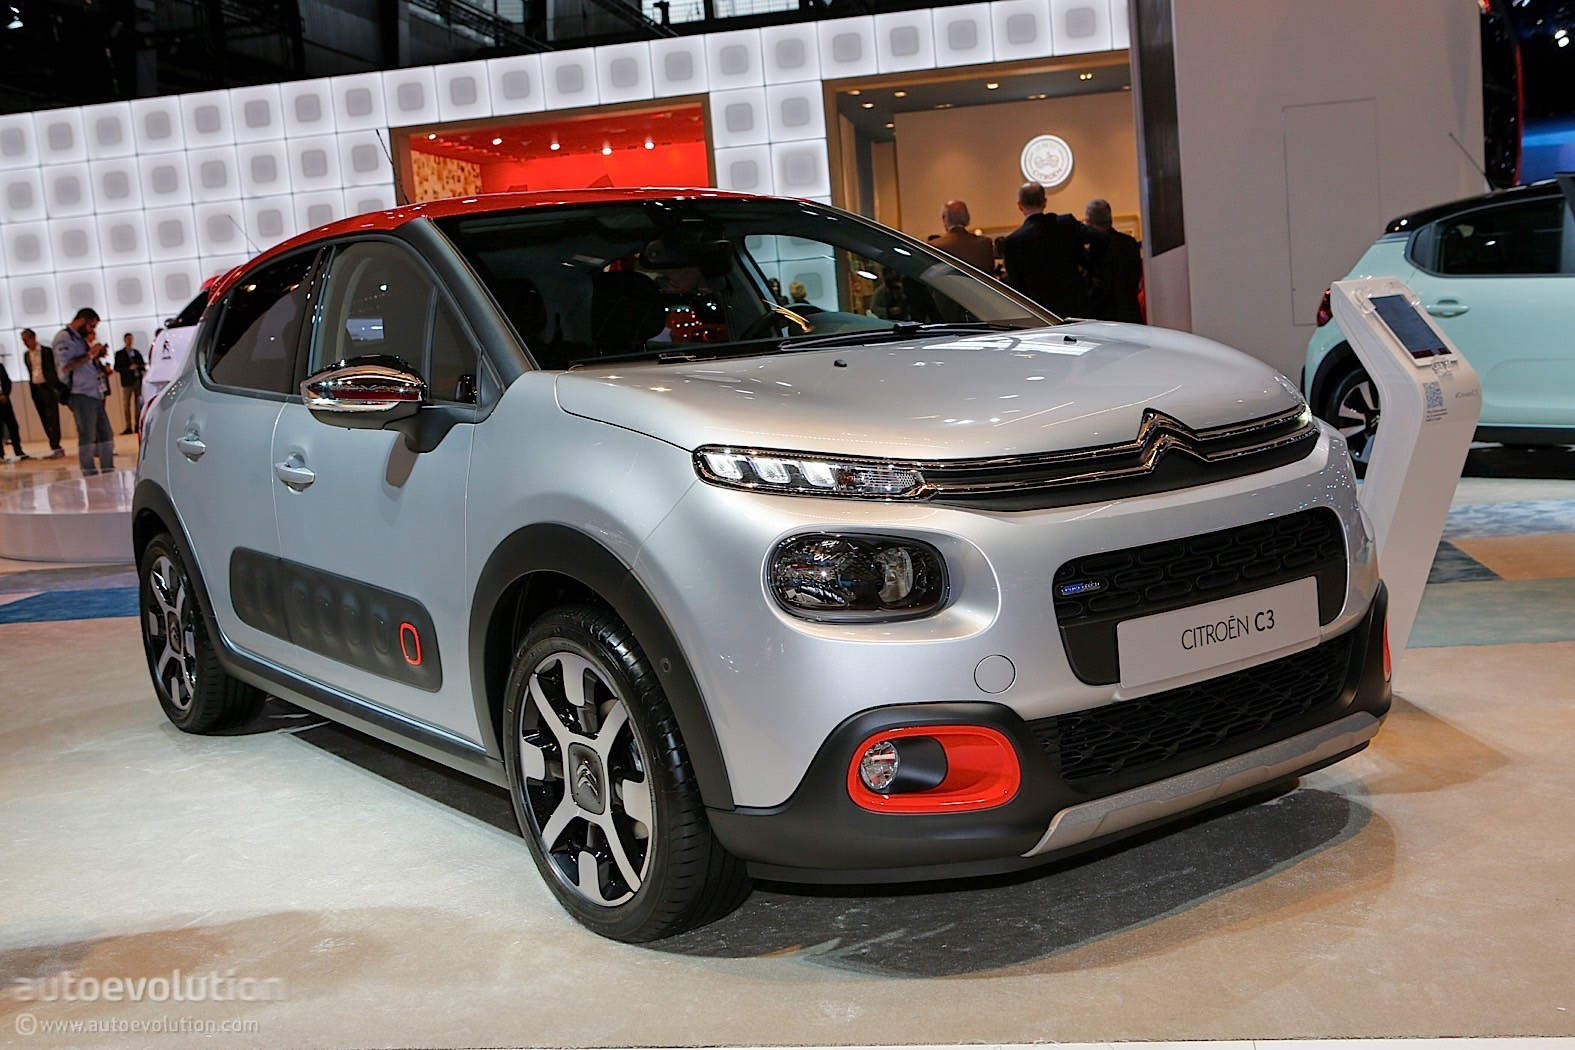 2017 citroen c3 kind of looks like robocop 39 s helmet in. Black Bedroom Furniture Sets. Home Design Ideas